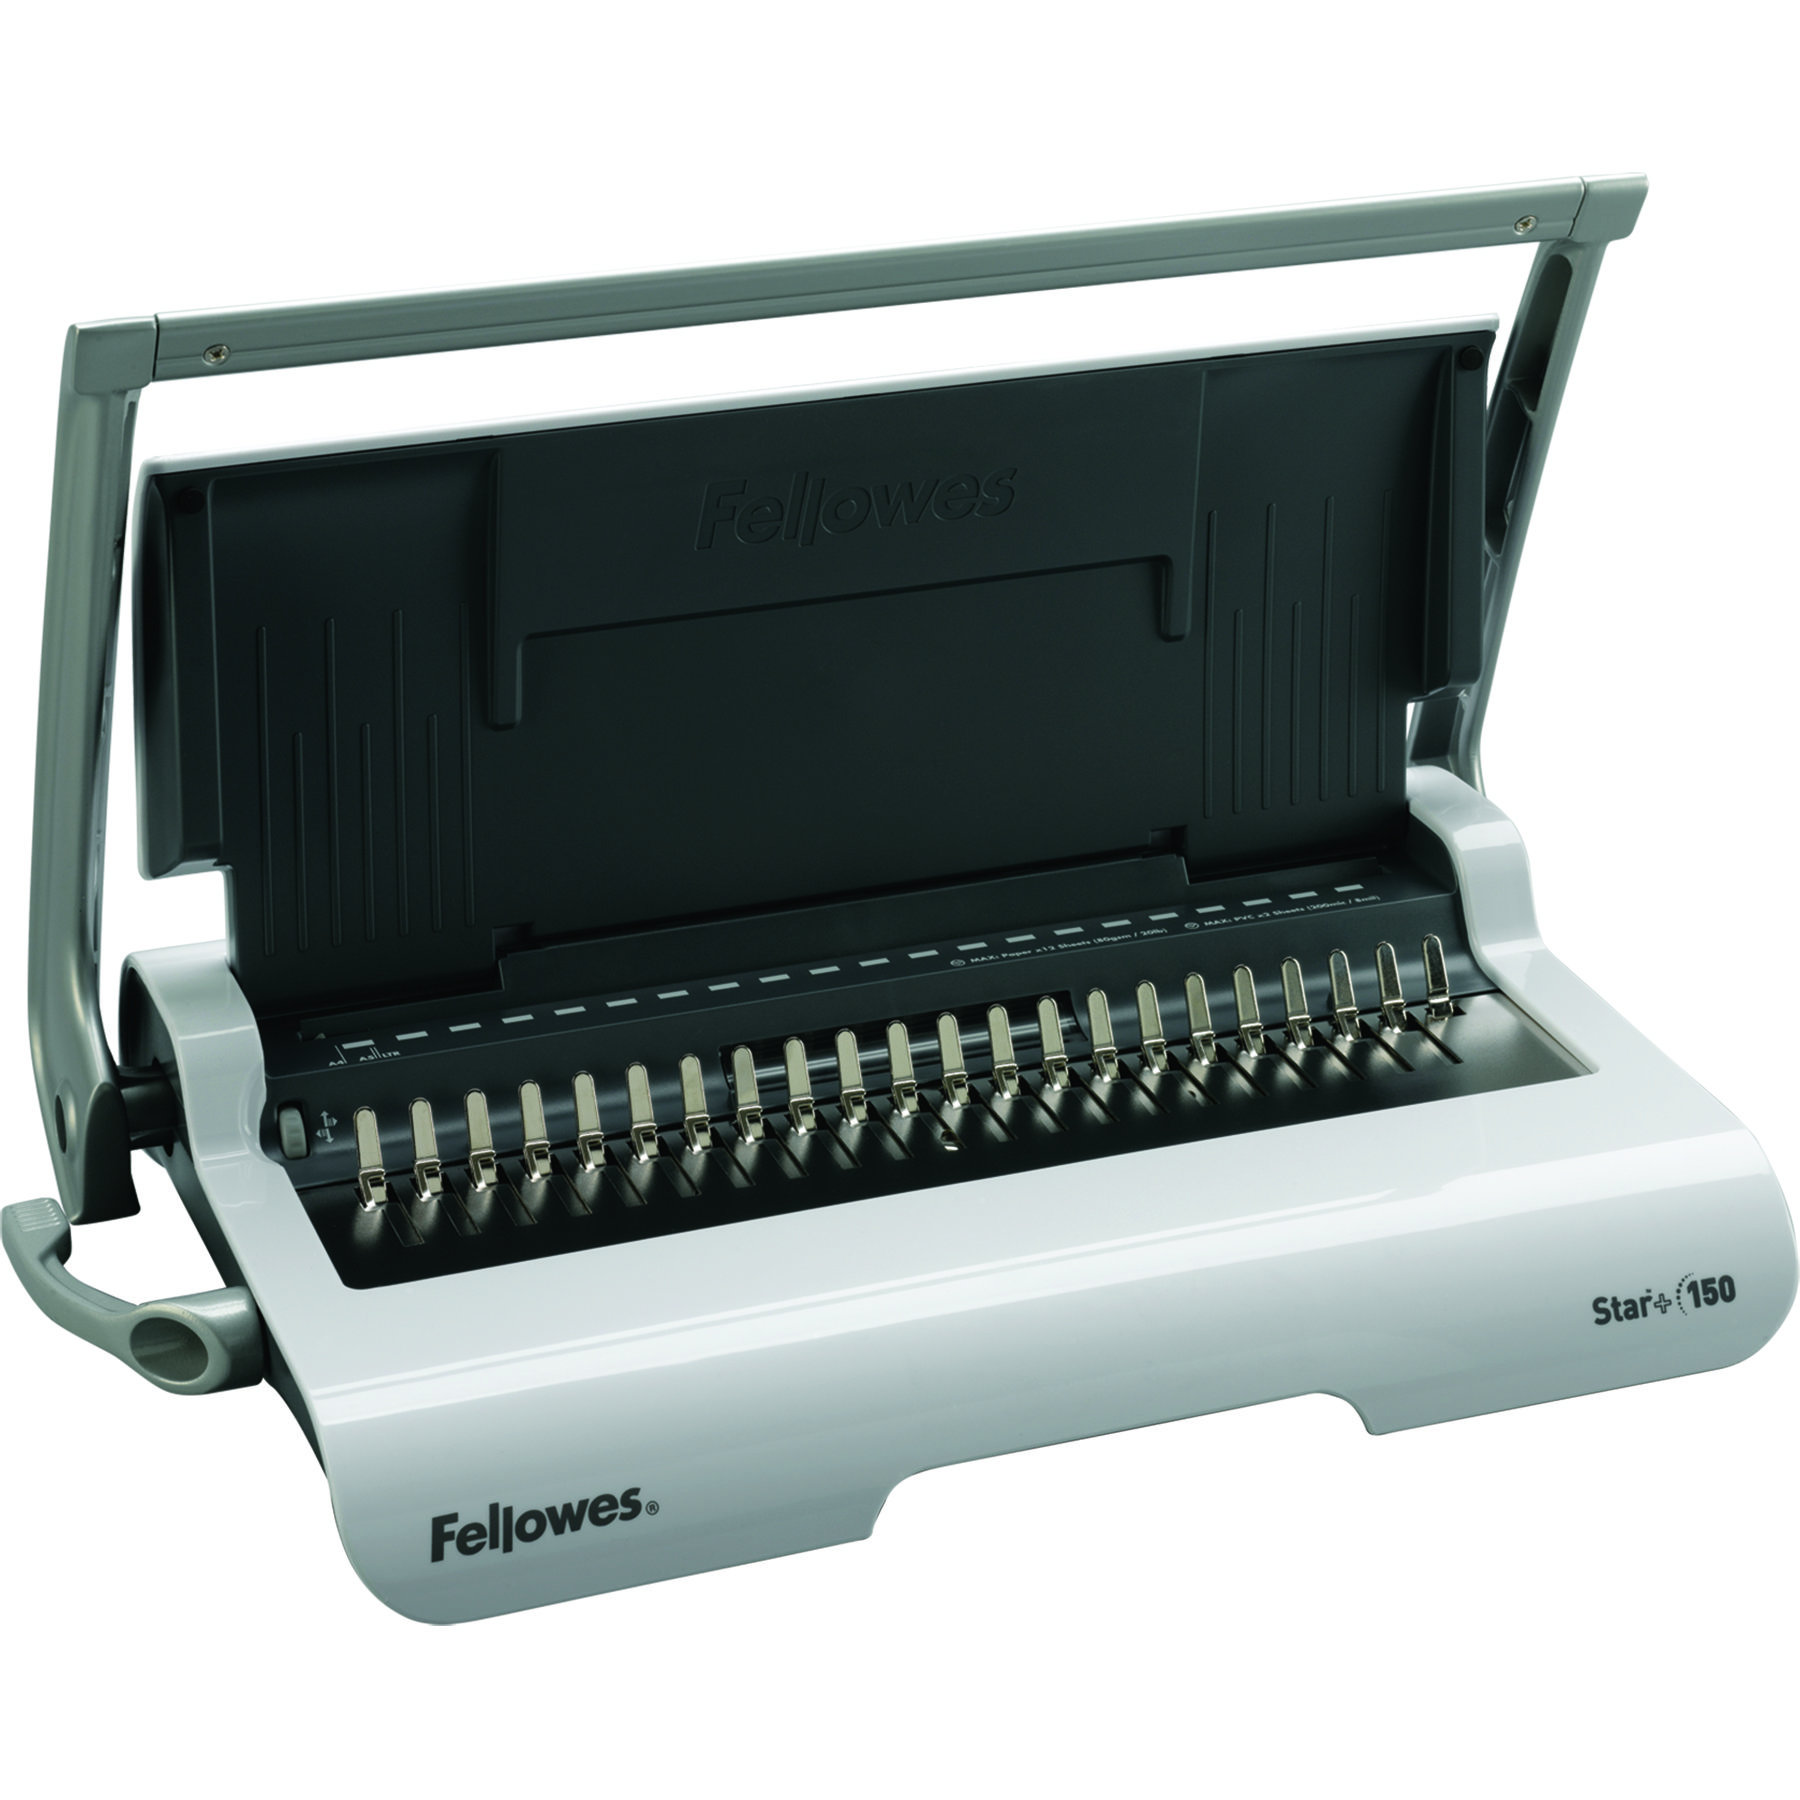 Fellowes Star A4 Manual Comb Binding Machine 5627501 - The Office Centre